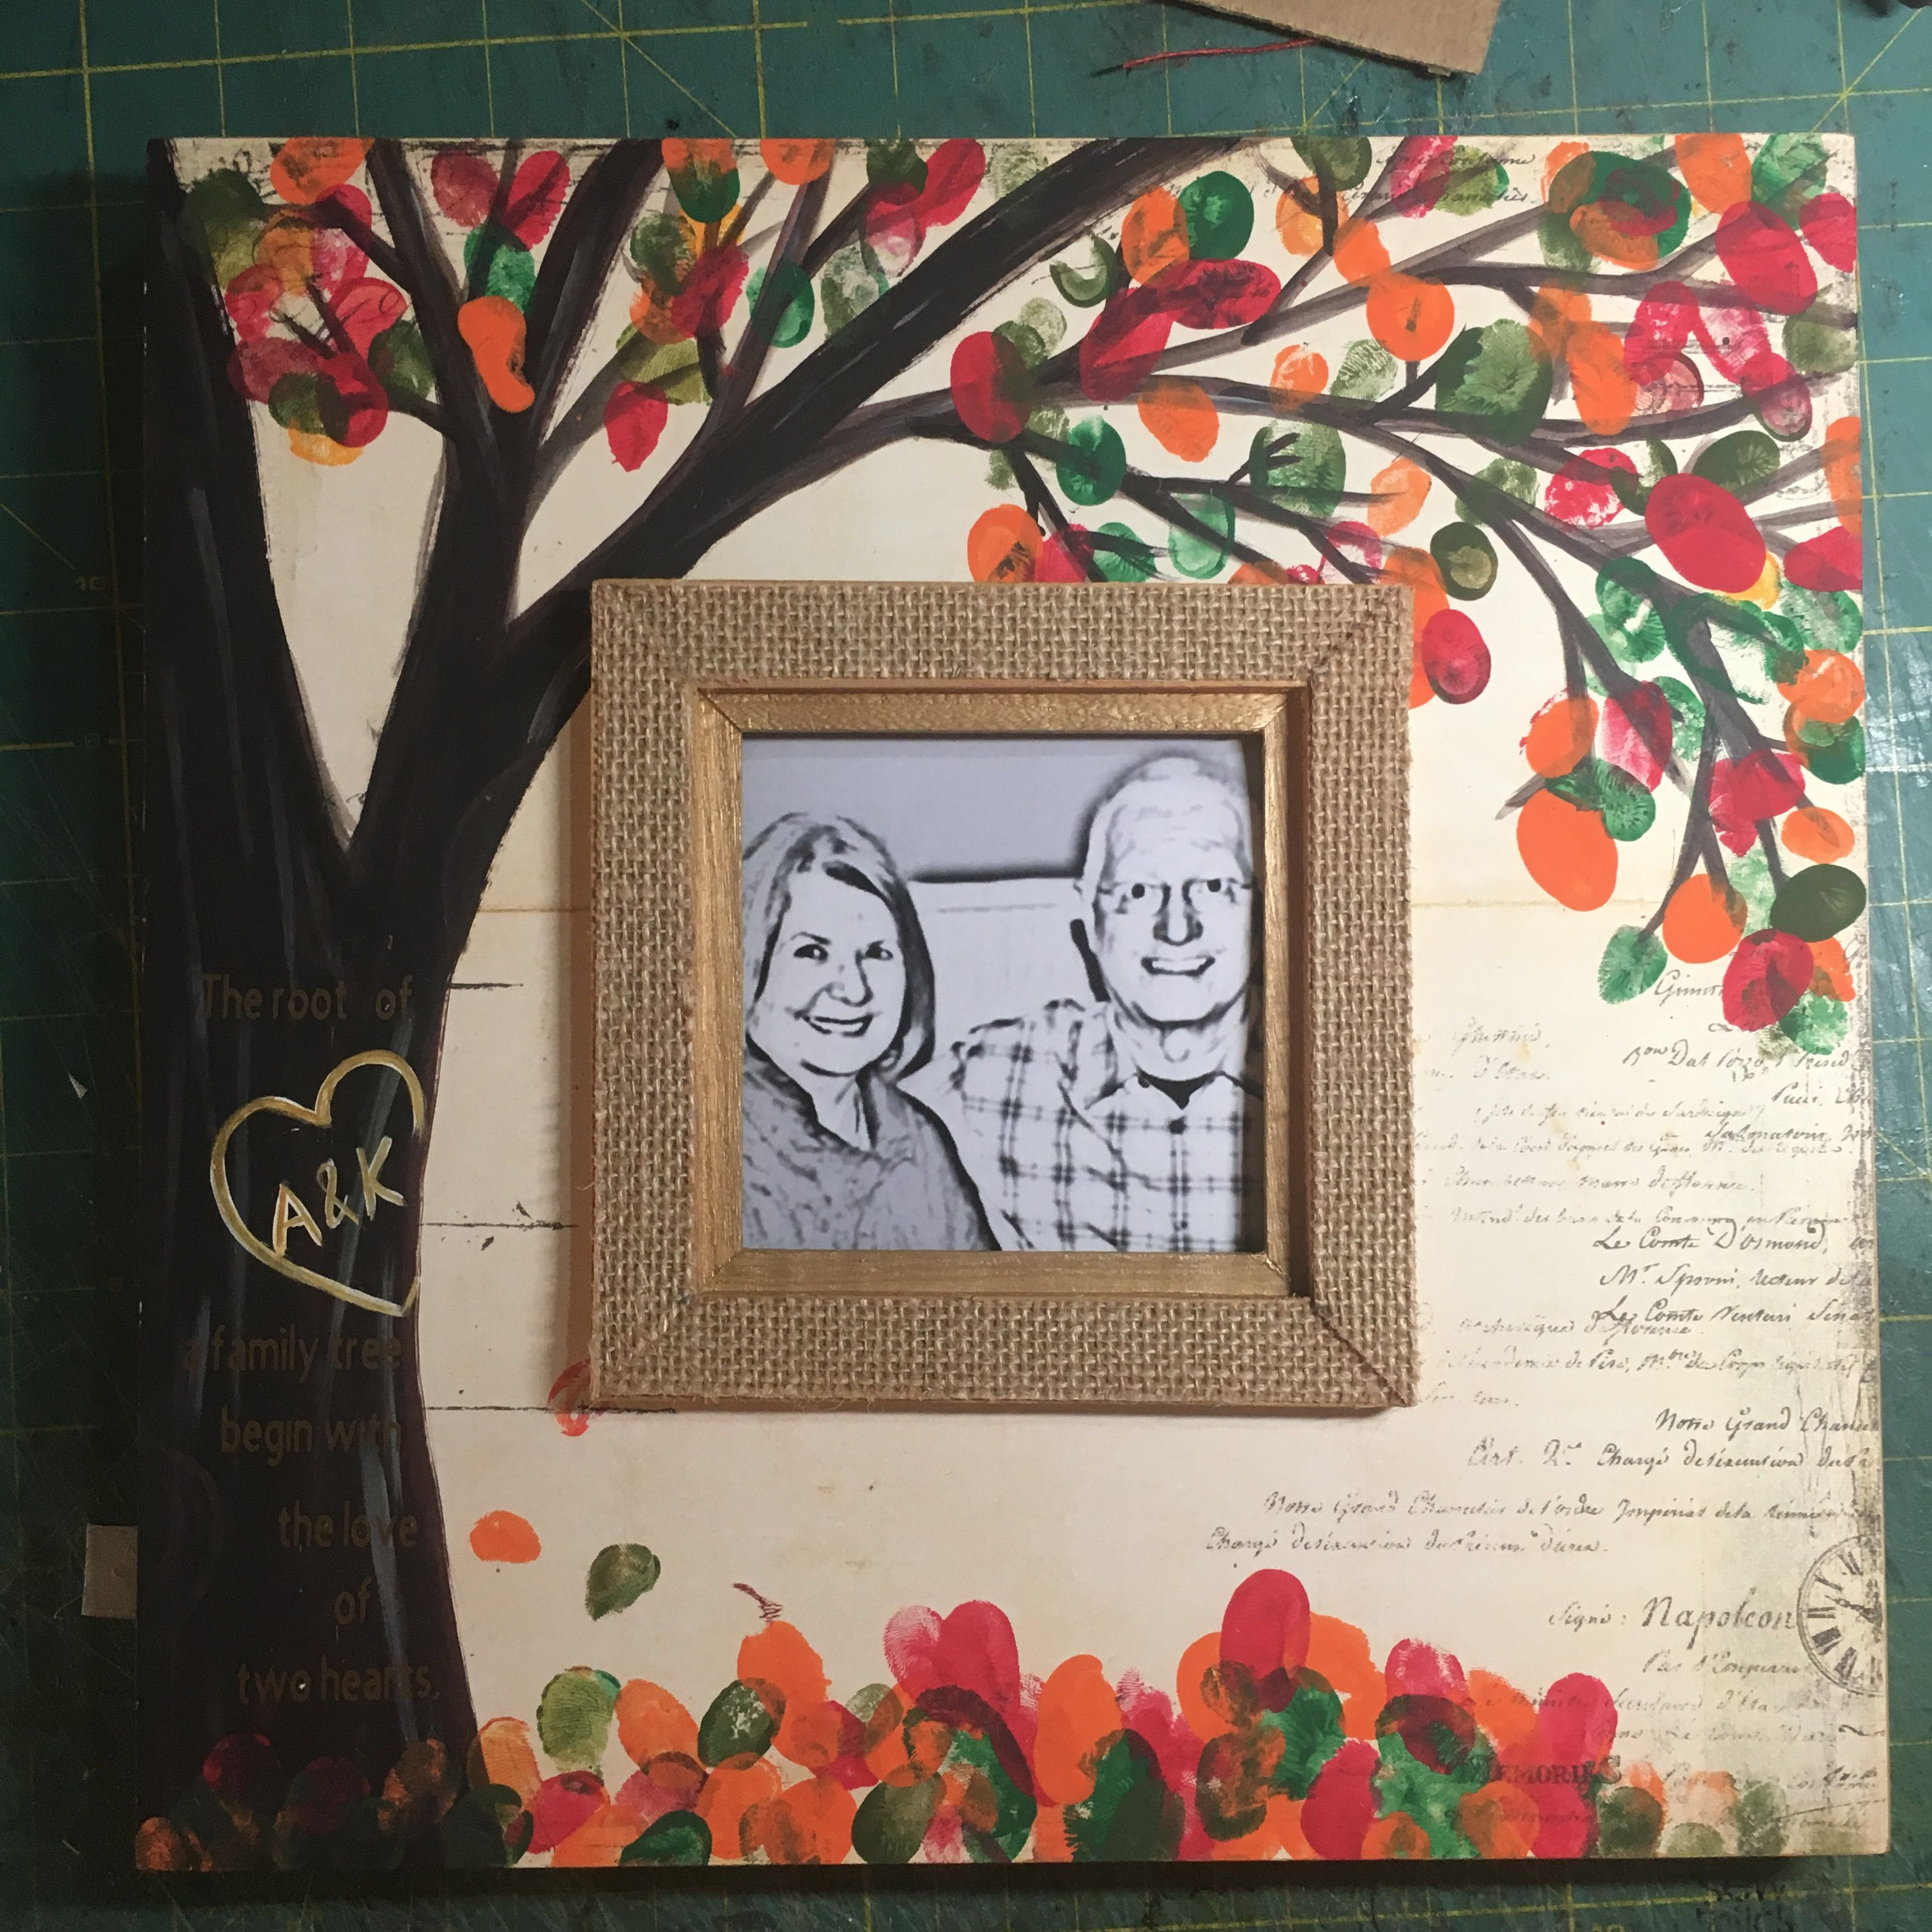 Anniversary gift for parentsinlaw. The leaves are kids